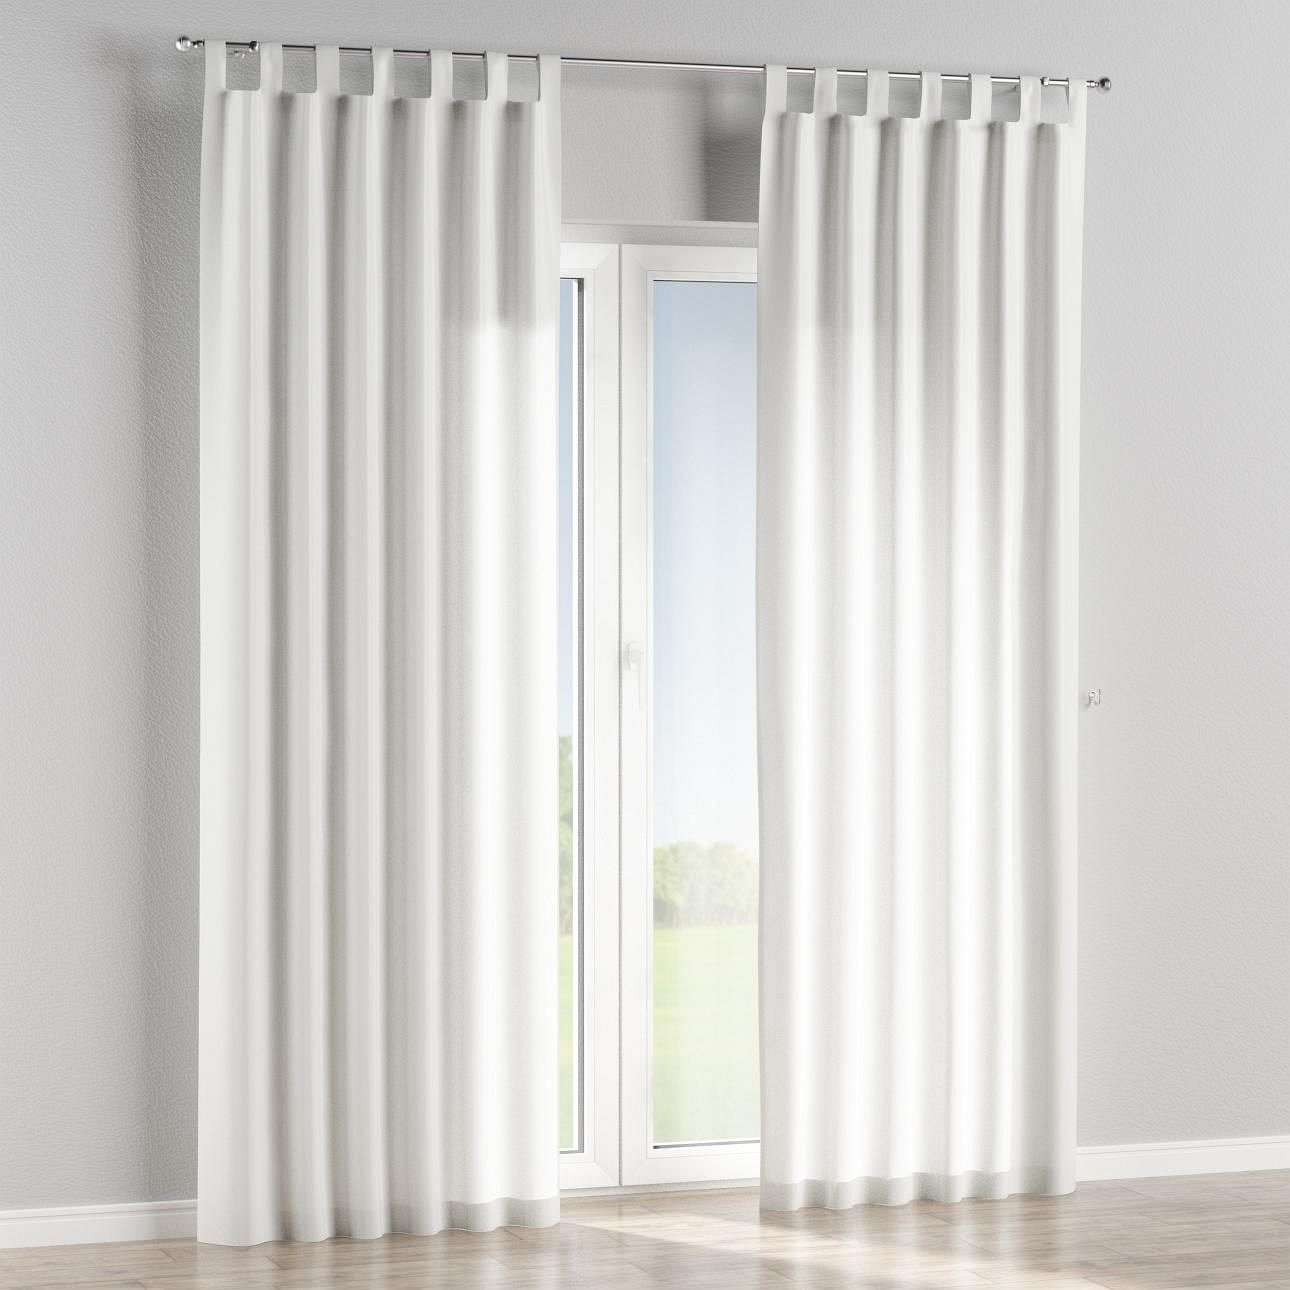 Tab top curtains in collection Kids/Baby, fabric: 119-13